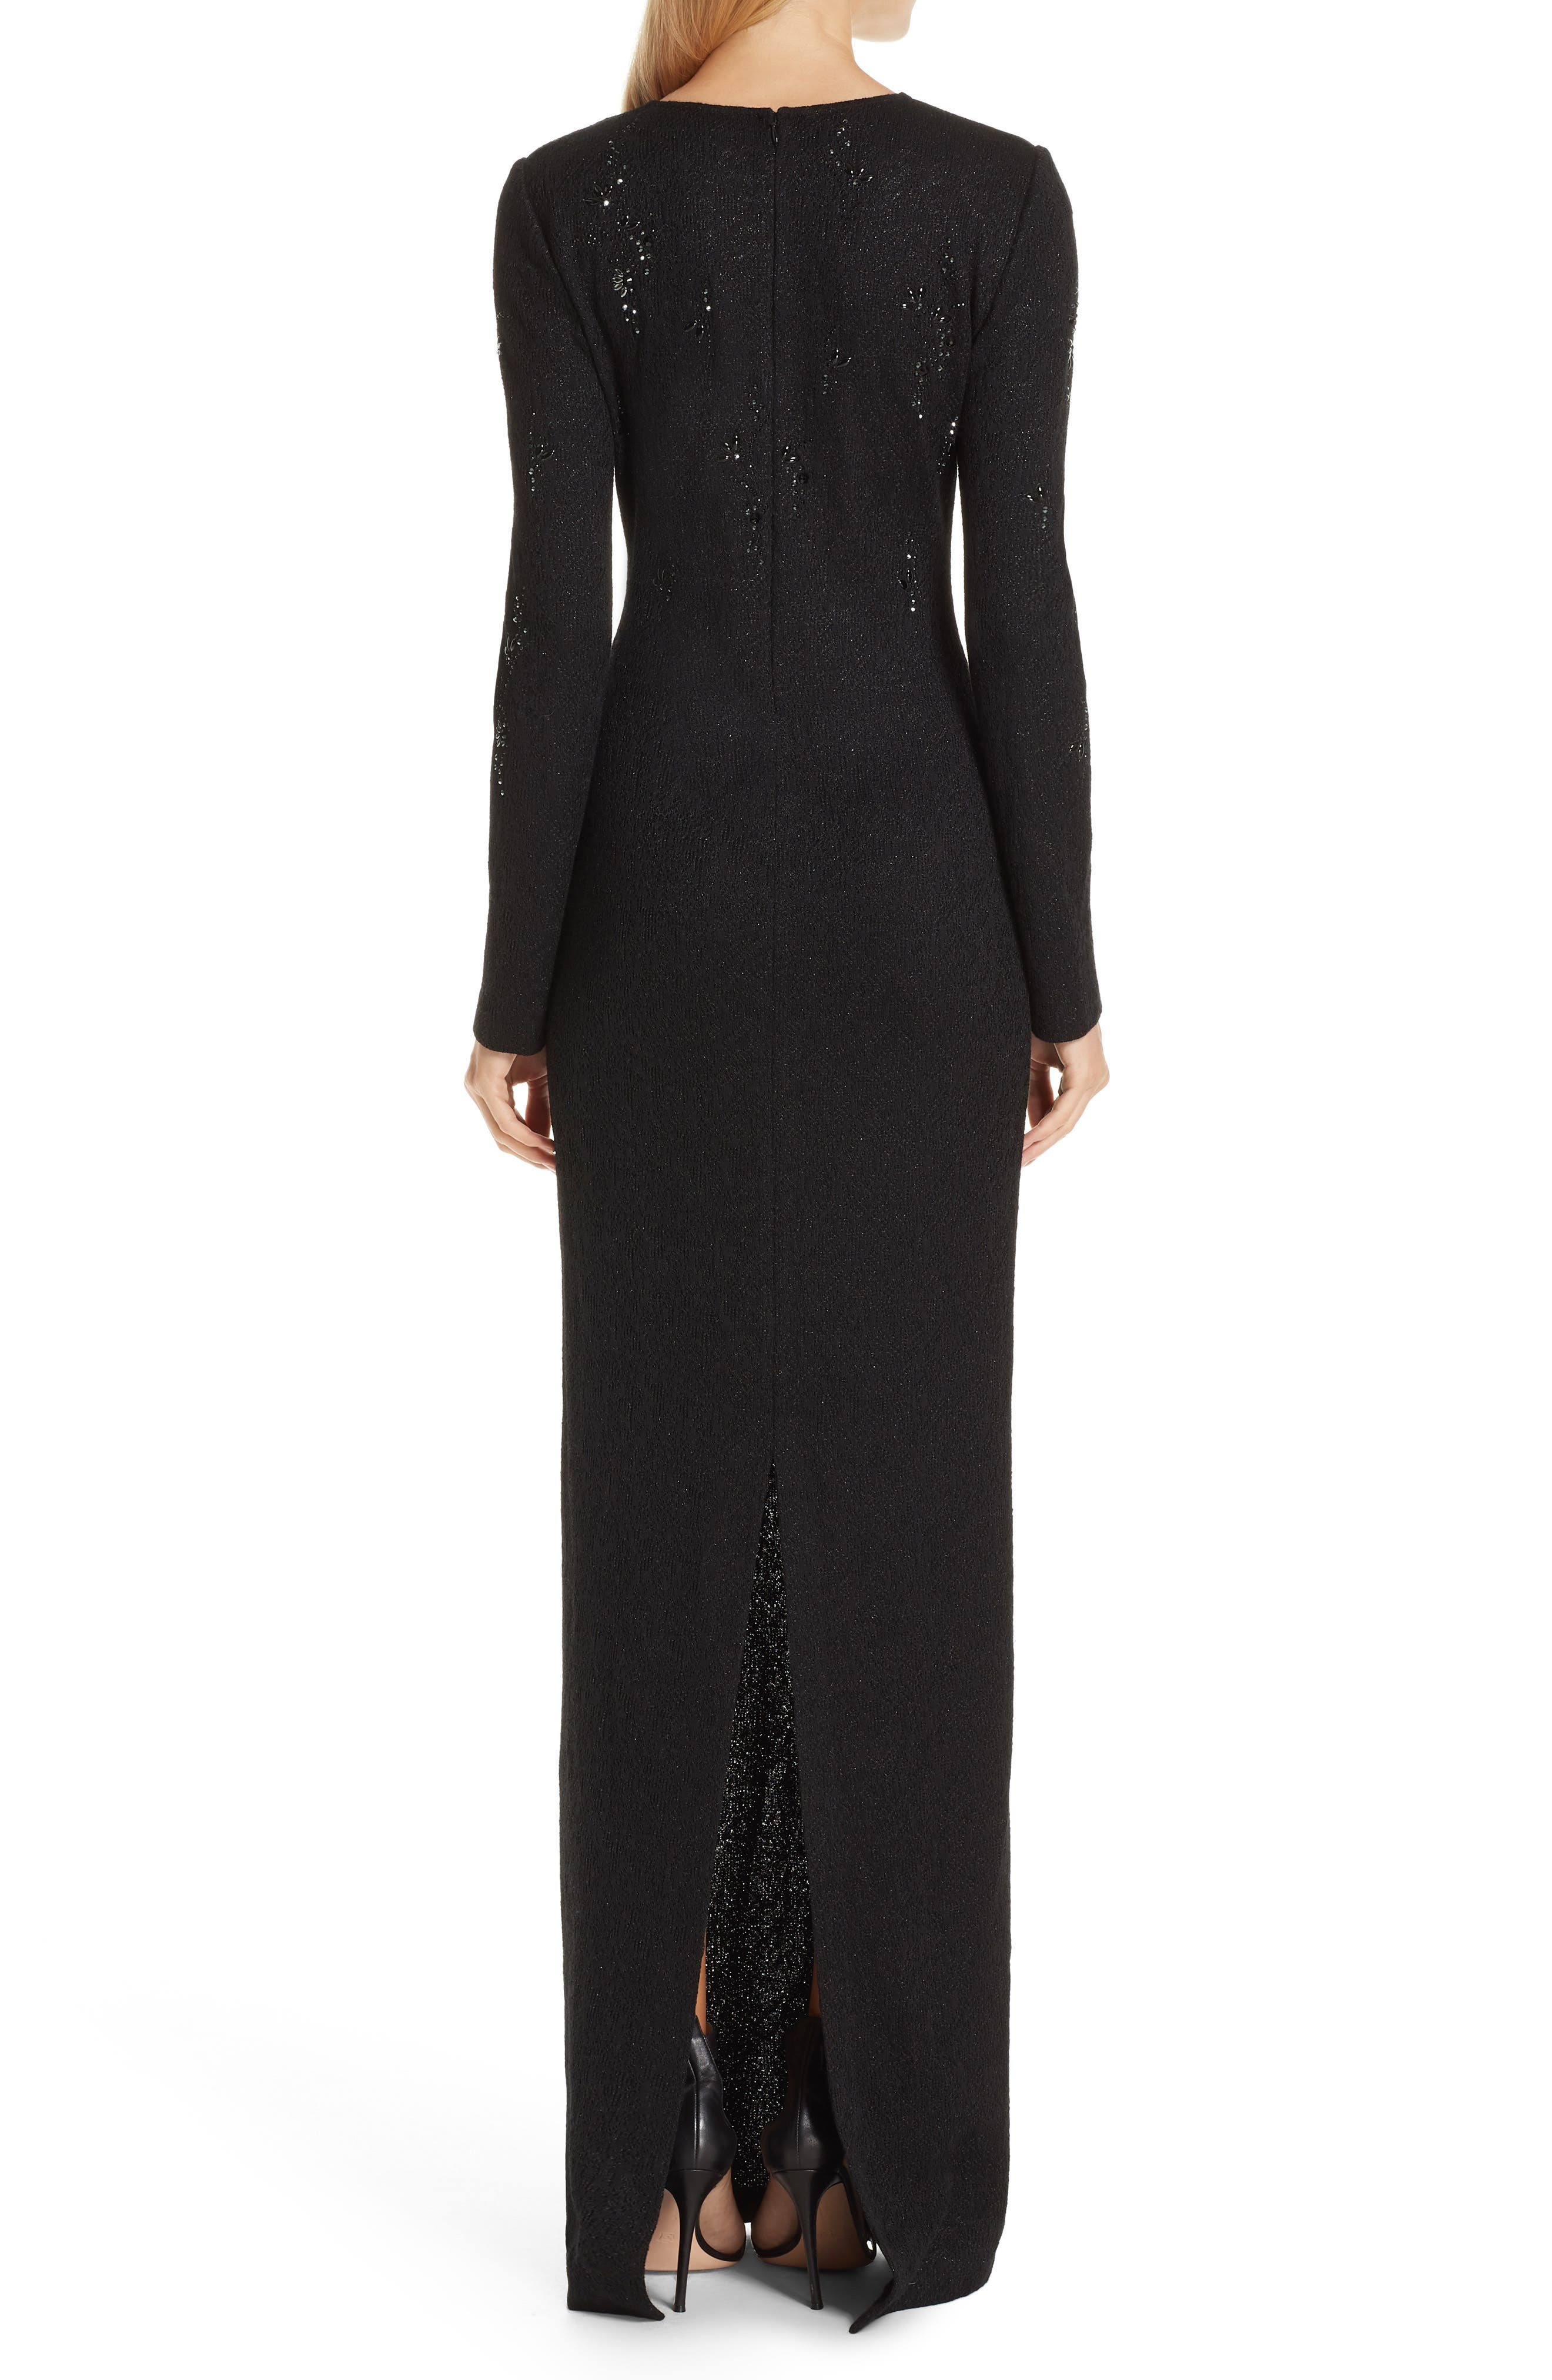 ST. JOHN COLLECTION, Lace Overlay Jacquard Knit Gown, Alternate thumbnail 2, color, CAVIAR